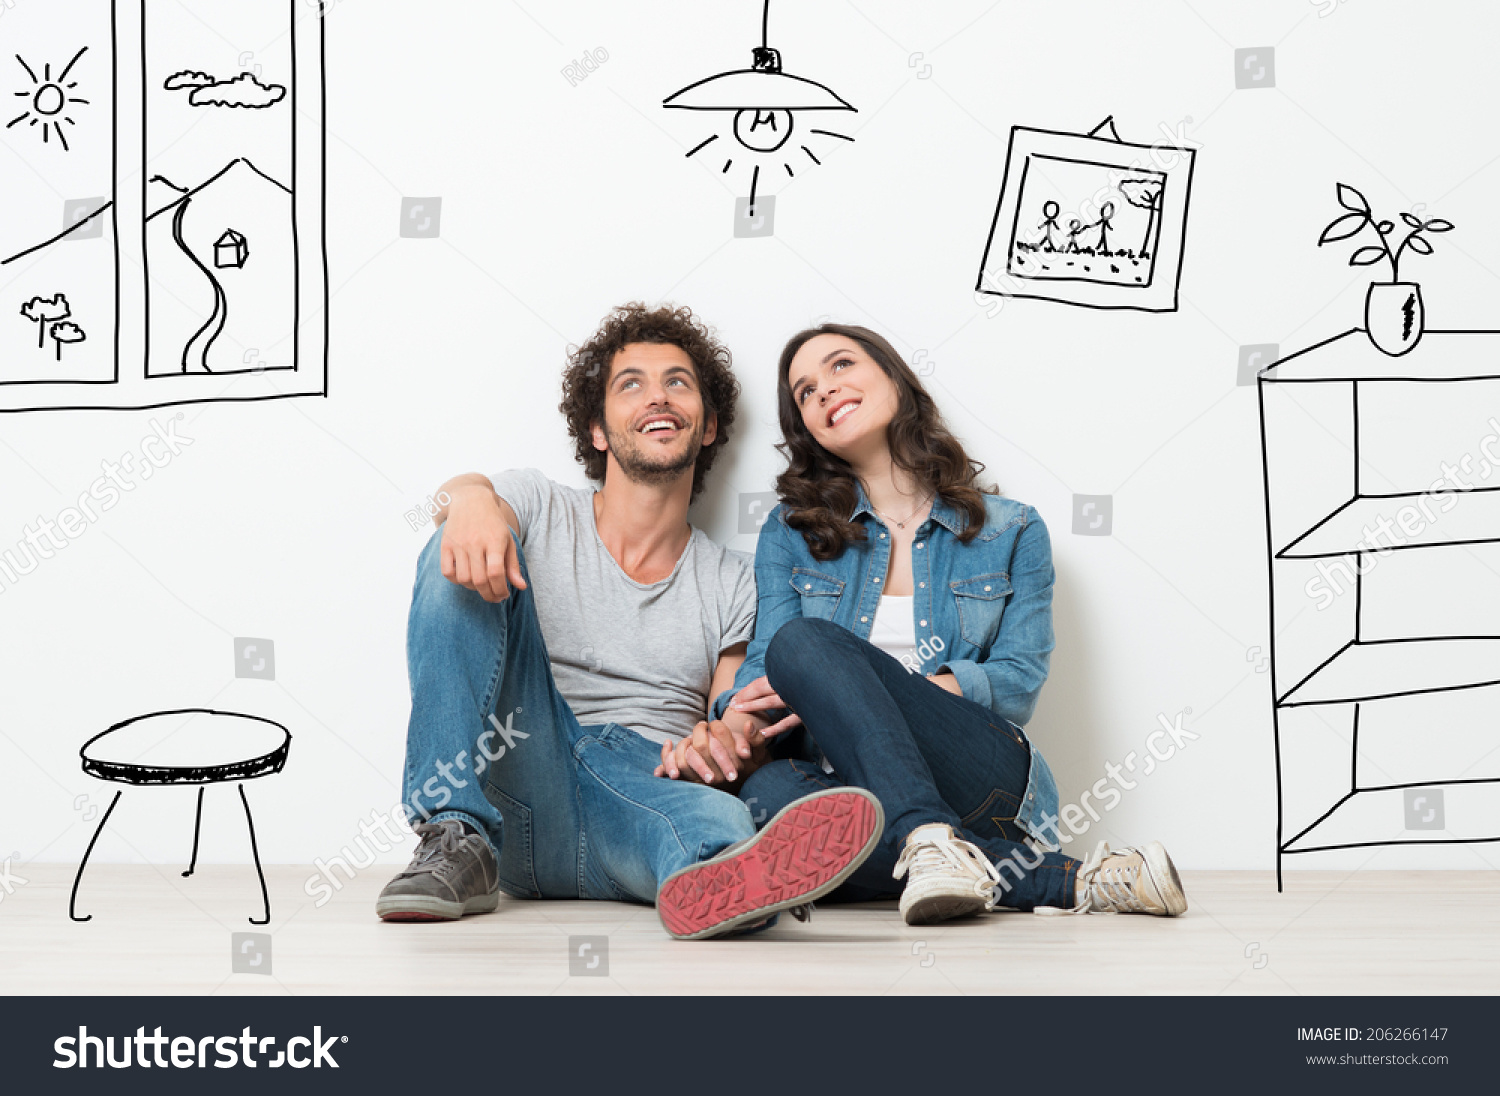 Portrait Of Happy Young Couple Sitting On Floor Looking Up While Dreaming Their New Home And Furnishing #206266147